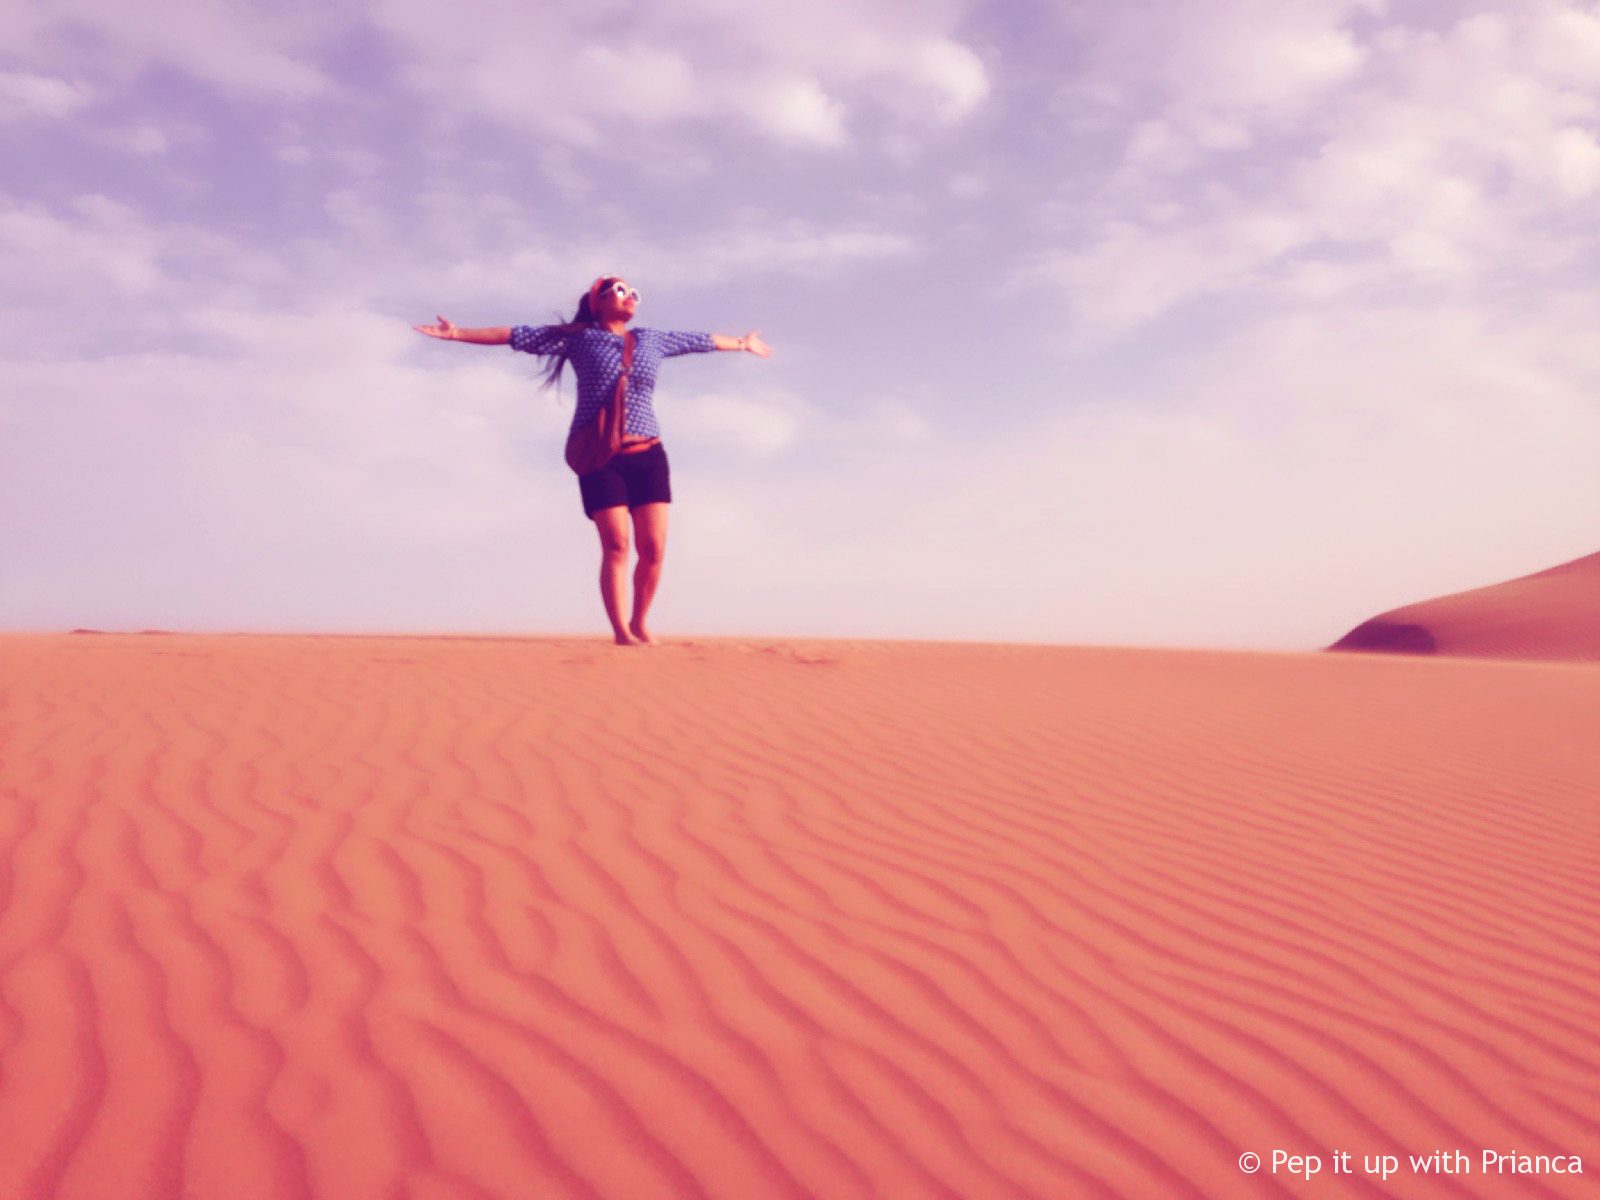 Dubai Desert fun Pep it up with prianca - Travel to the Desert to 'Desert' Yourself & Find your Soul - Magnificent Dubai Desert